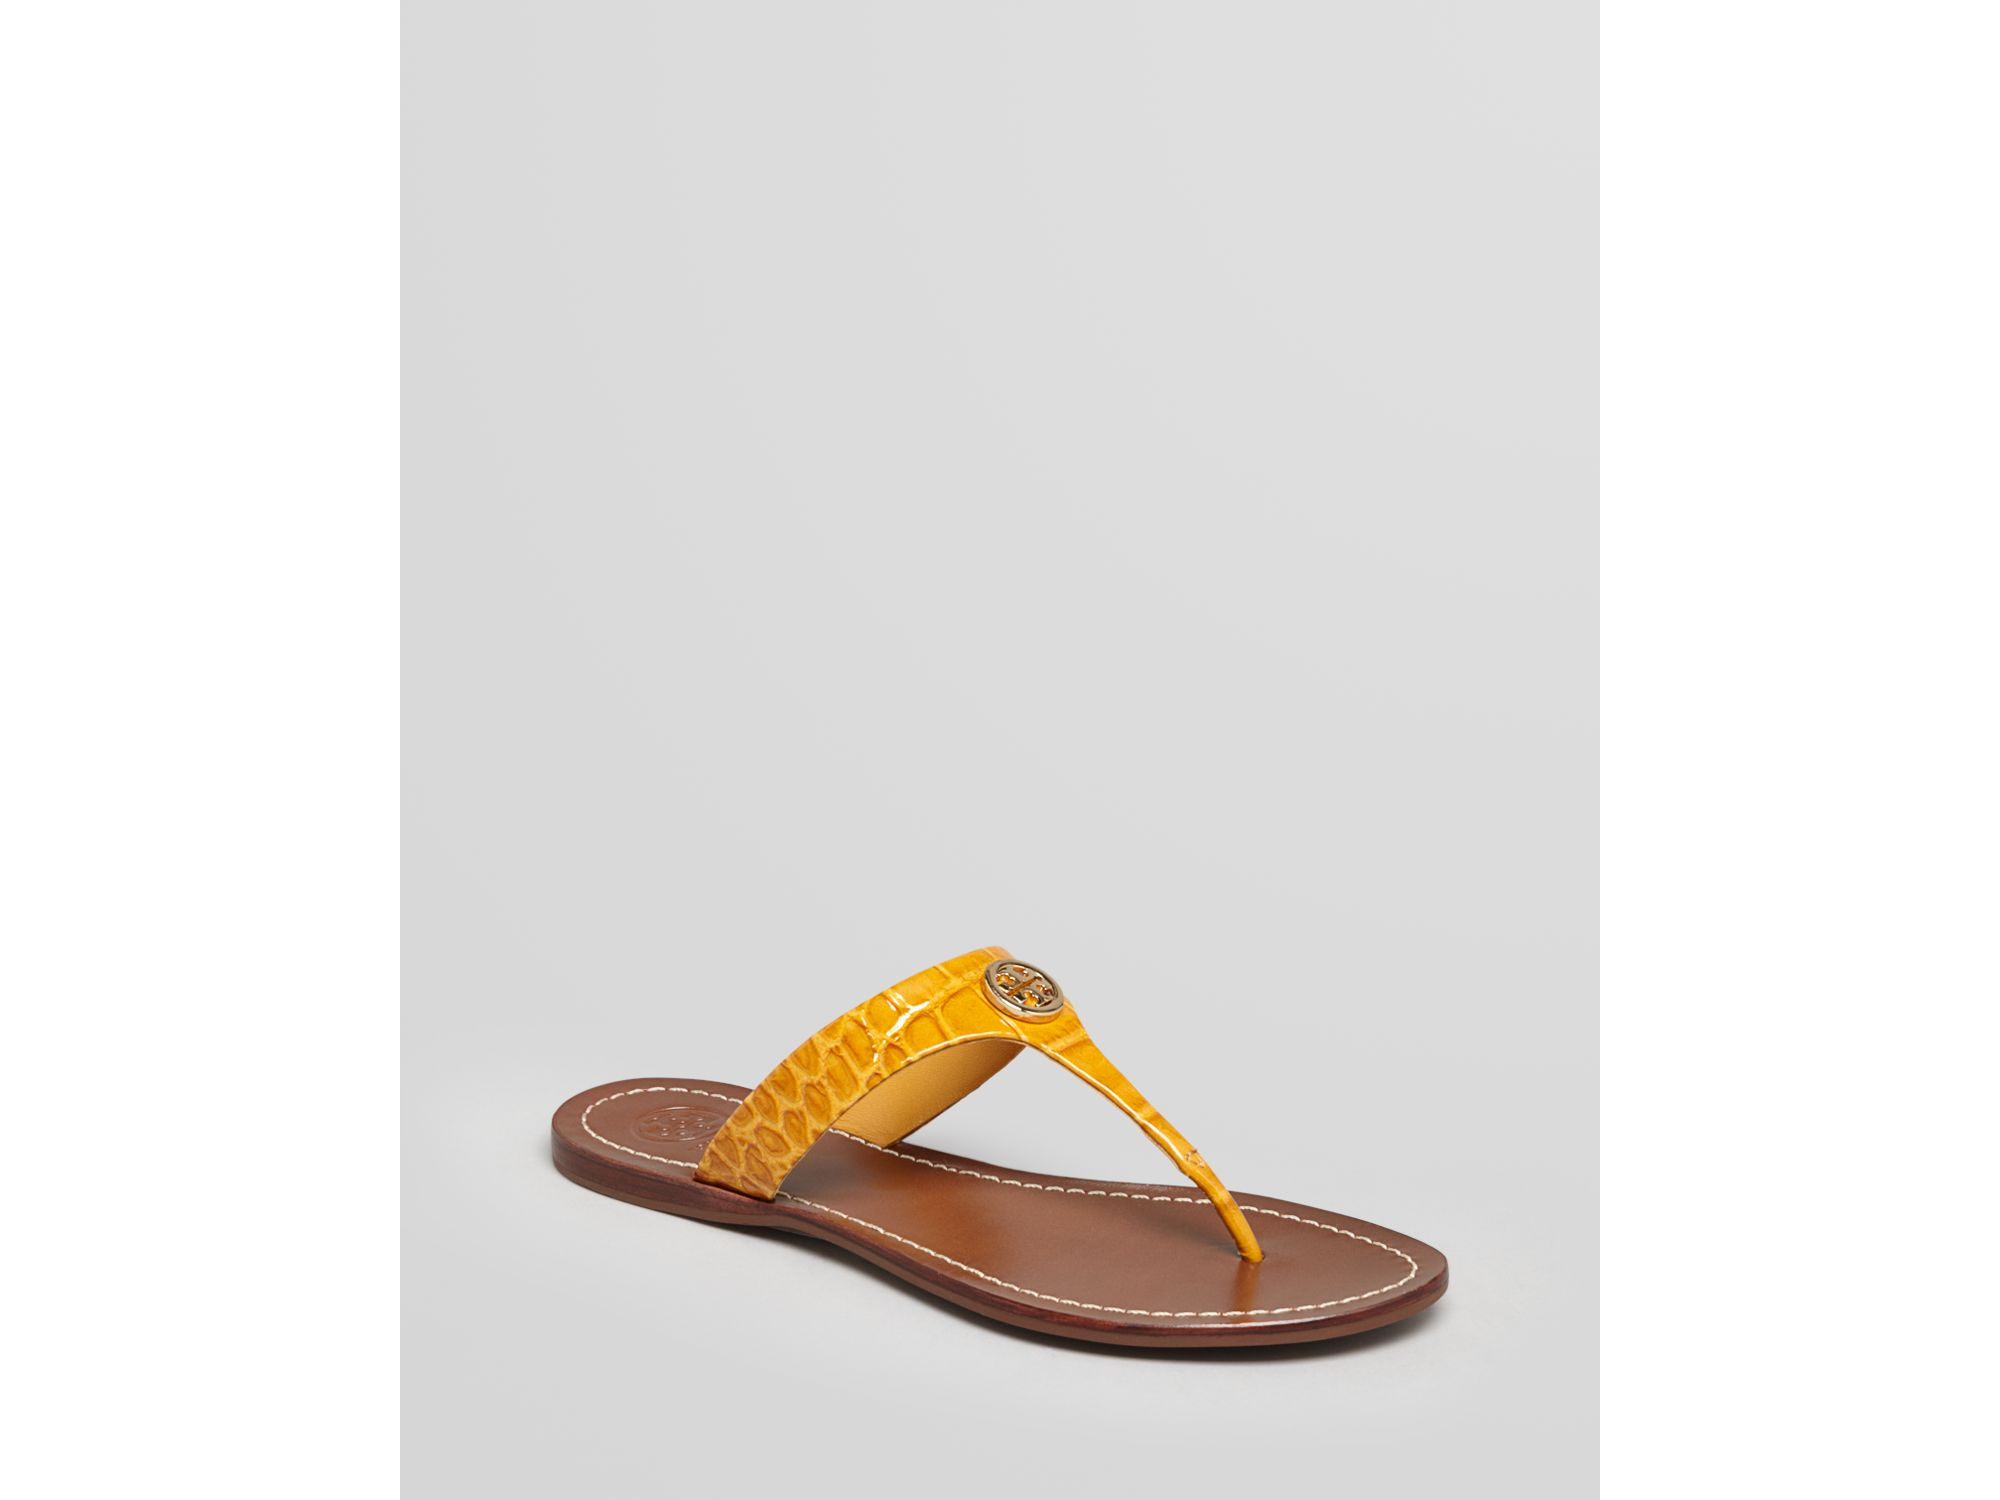 29f92a2292dc80 Lyst - Tory Burch Flat Thong Sandals Cameron in Yellow